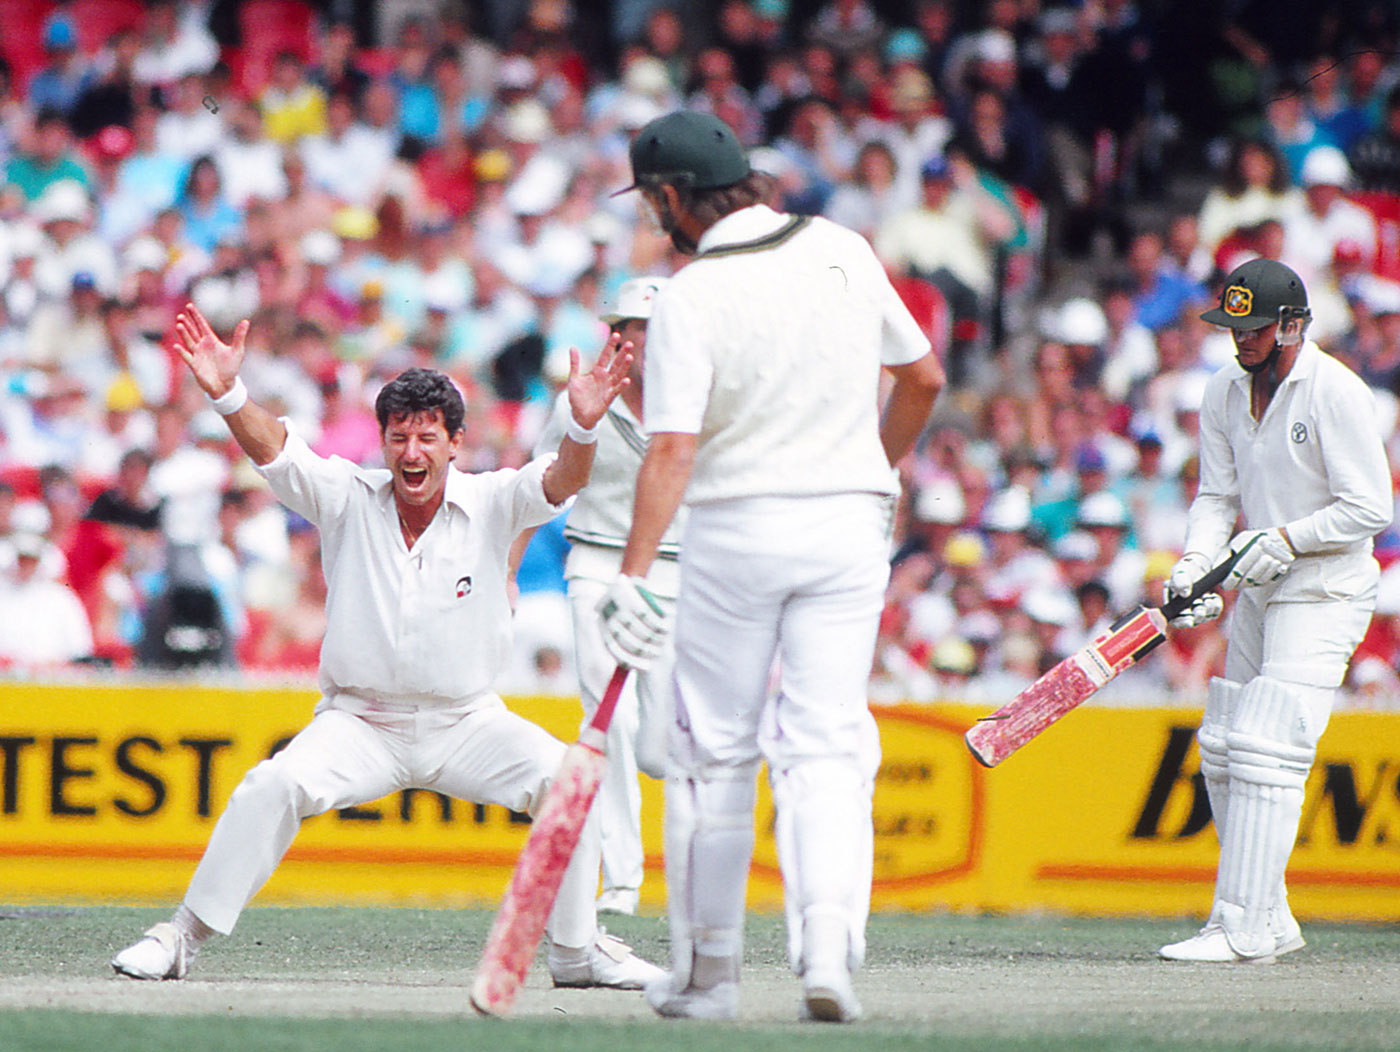 Richard Hadlee celebrates a wicket, Australia v New Zealand, 3rd Test, MCG, 3rd day, December 28, 1987